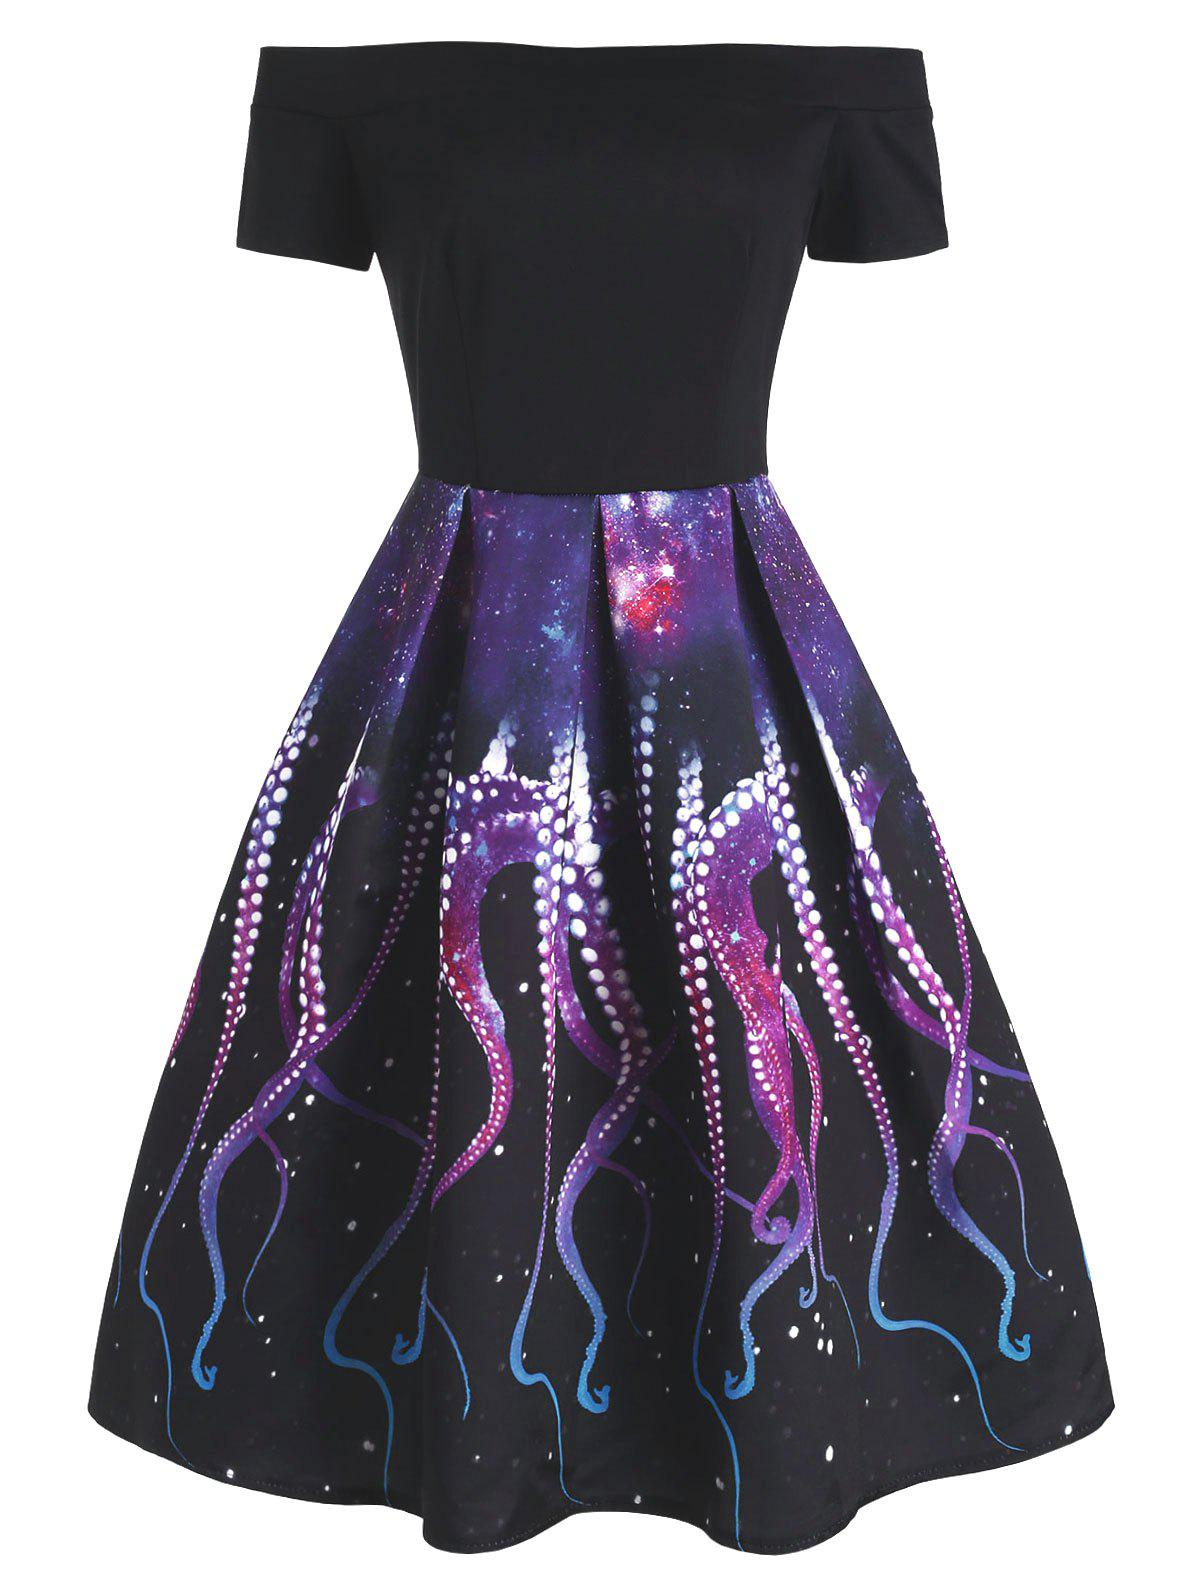 Octopus Galaxy Print Off Shoulder Party Dress - multicolor S